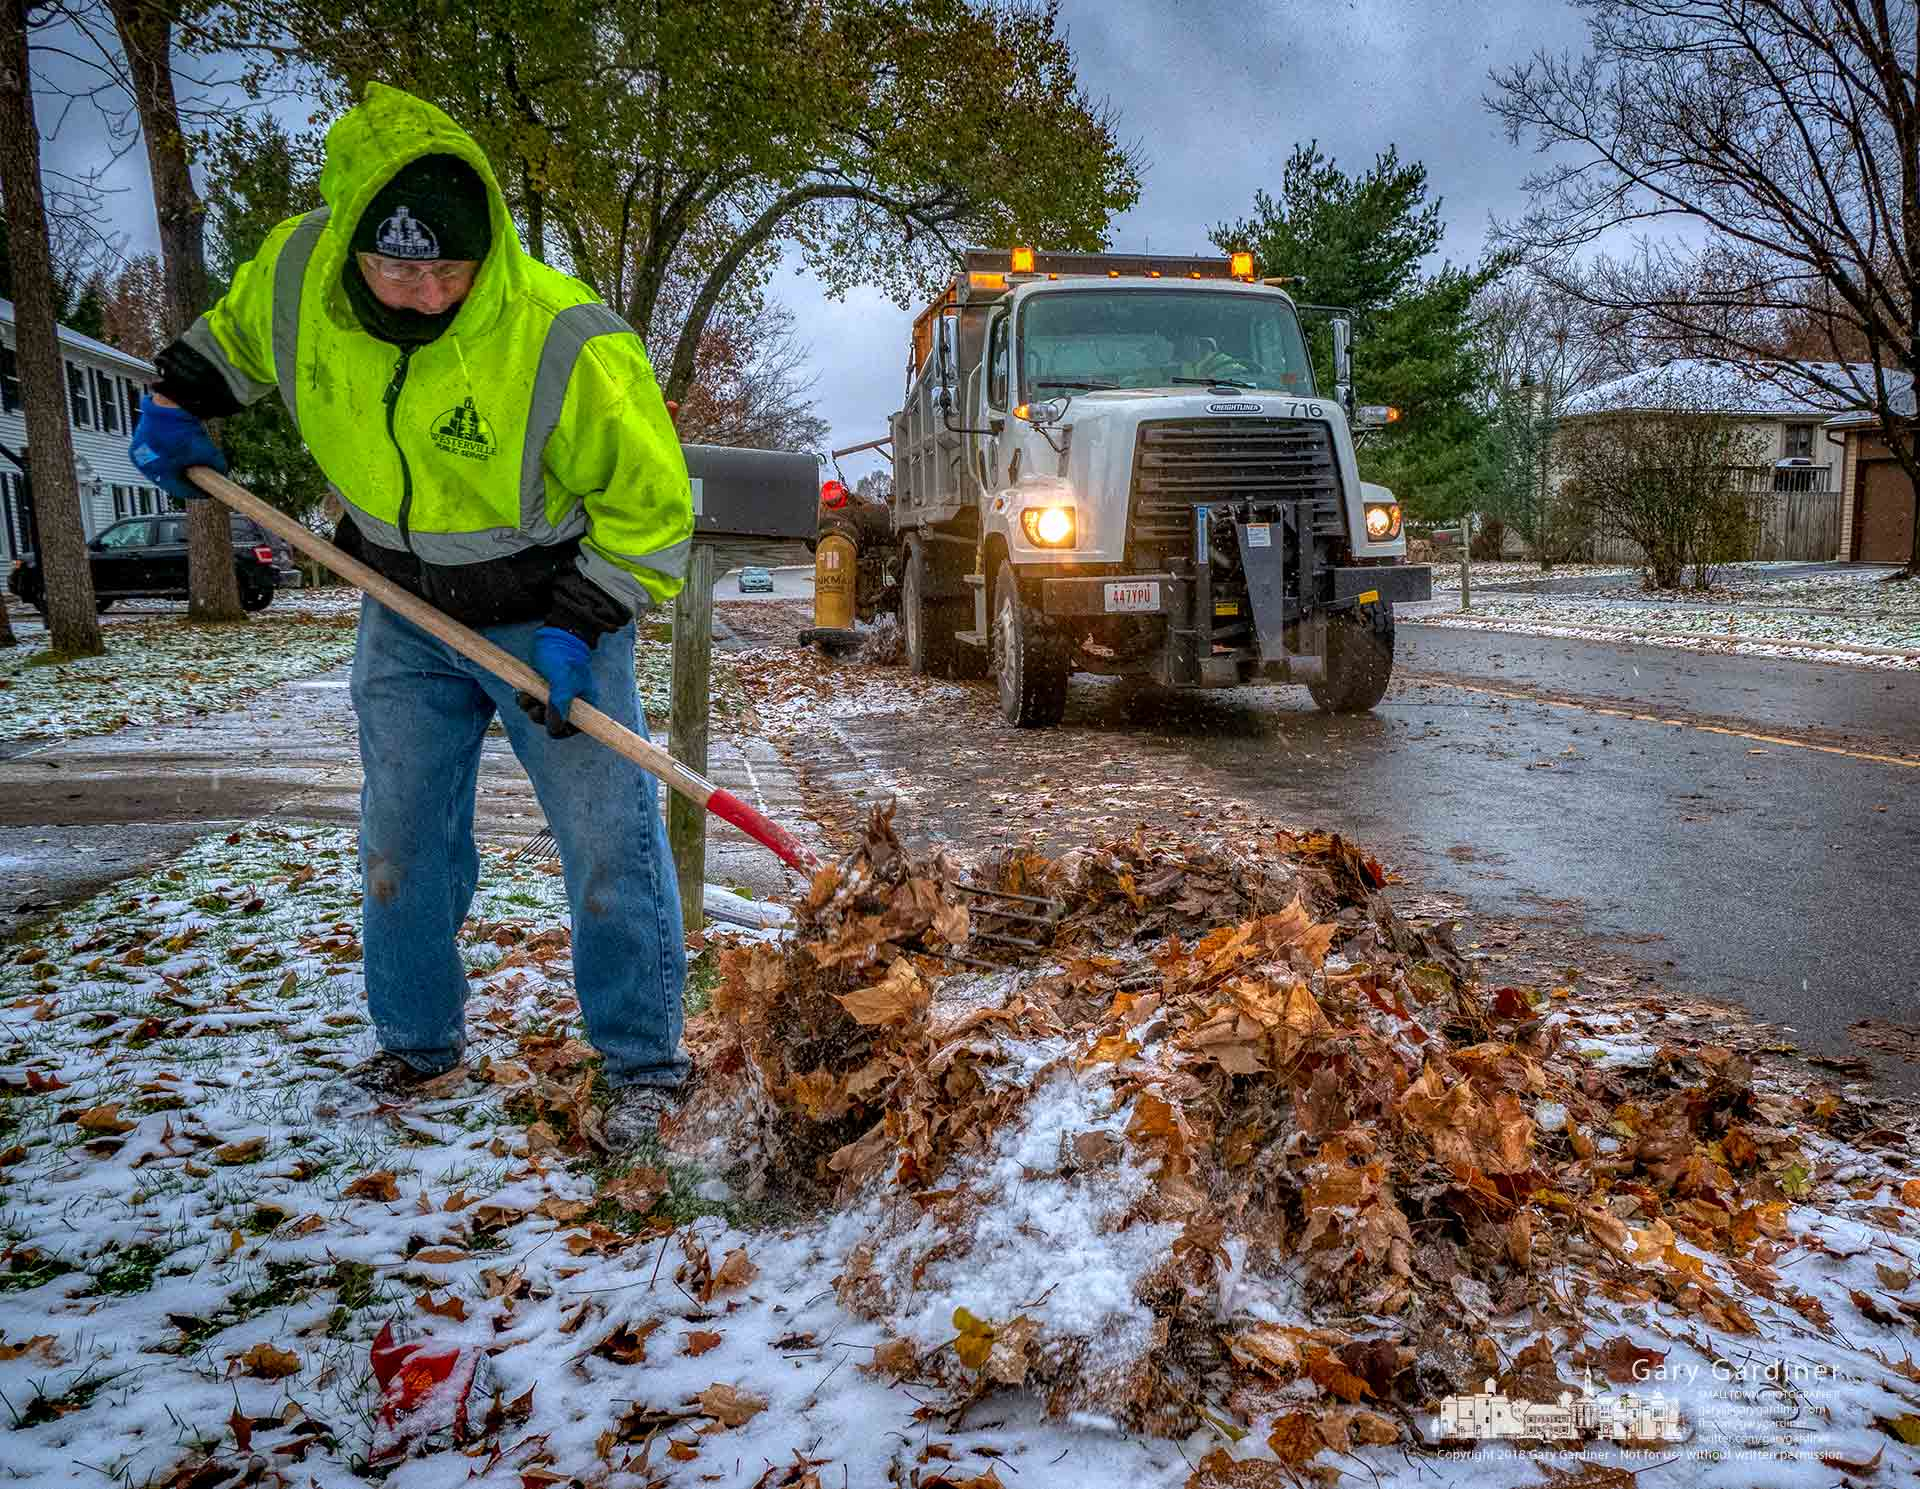 City workers used pitchforks instead of lawn rakes to clear wet, frozen leaves for retrieval during the city's leaf collection program. My Final Photo for Nov. 27, 2018.